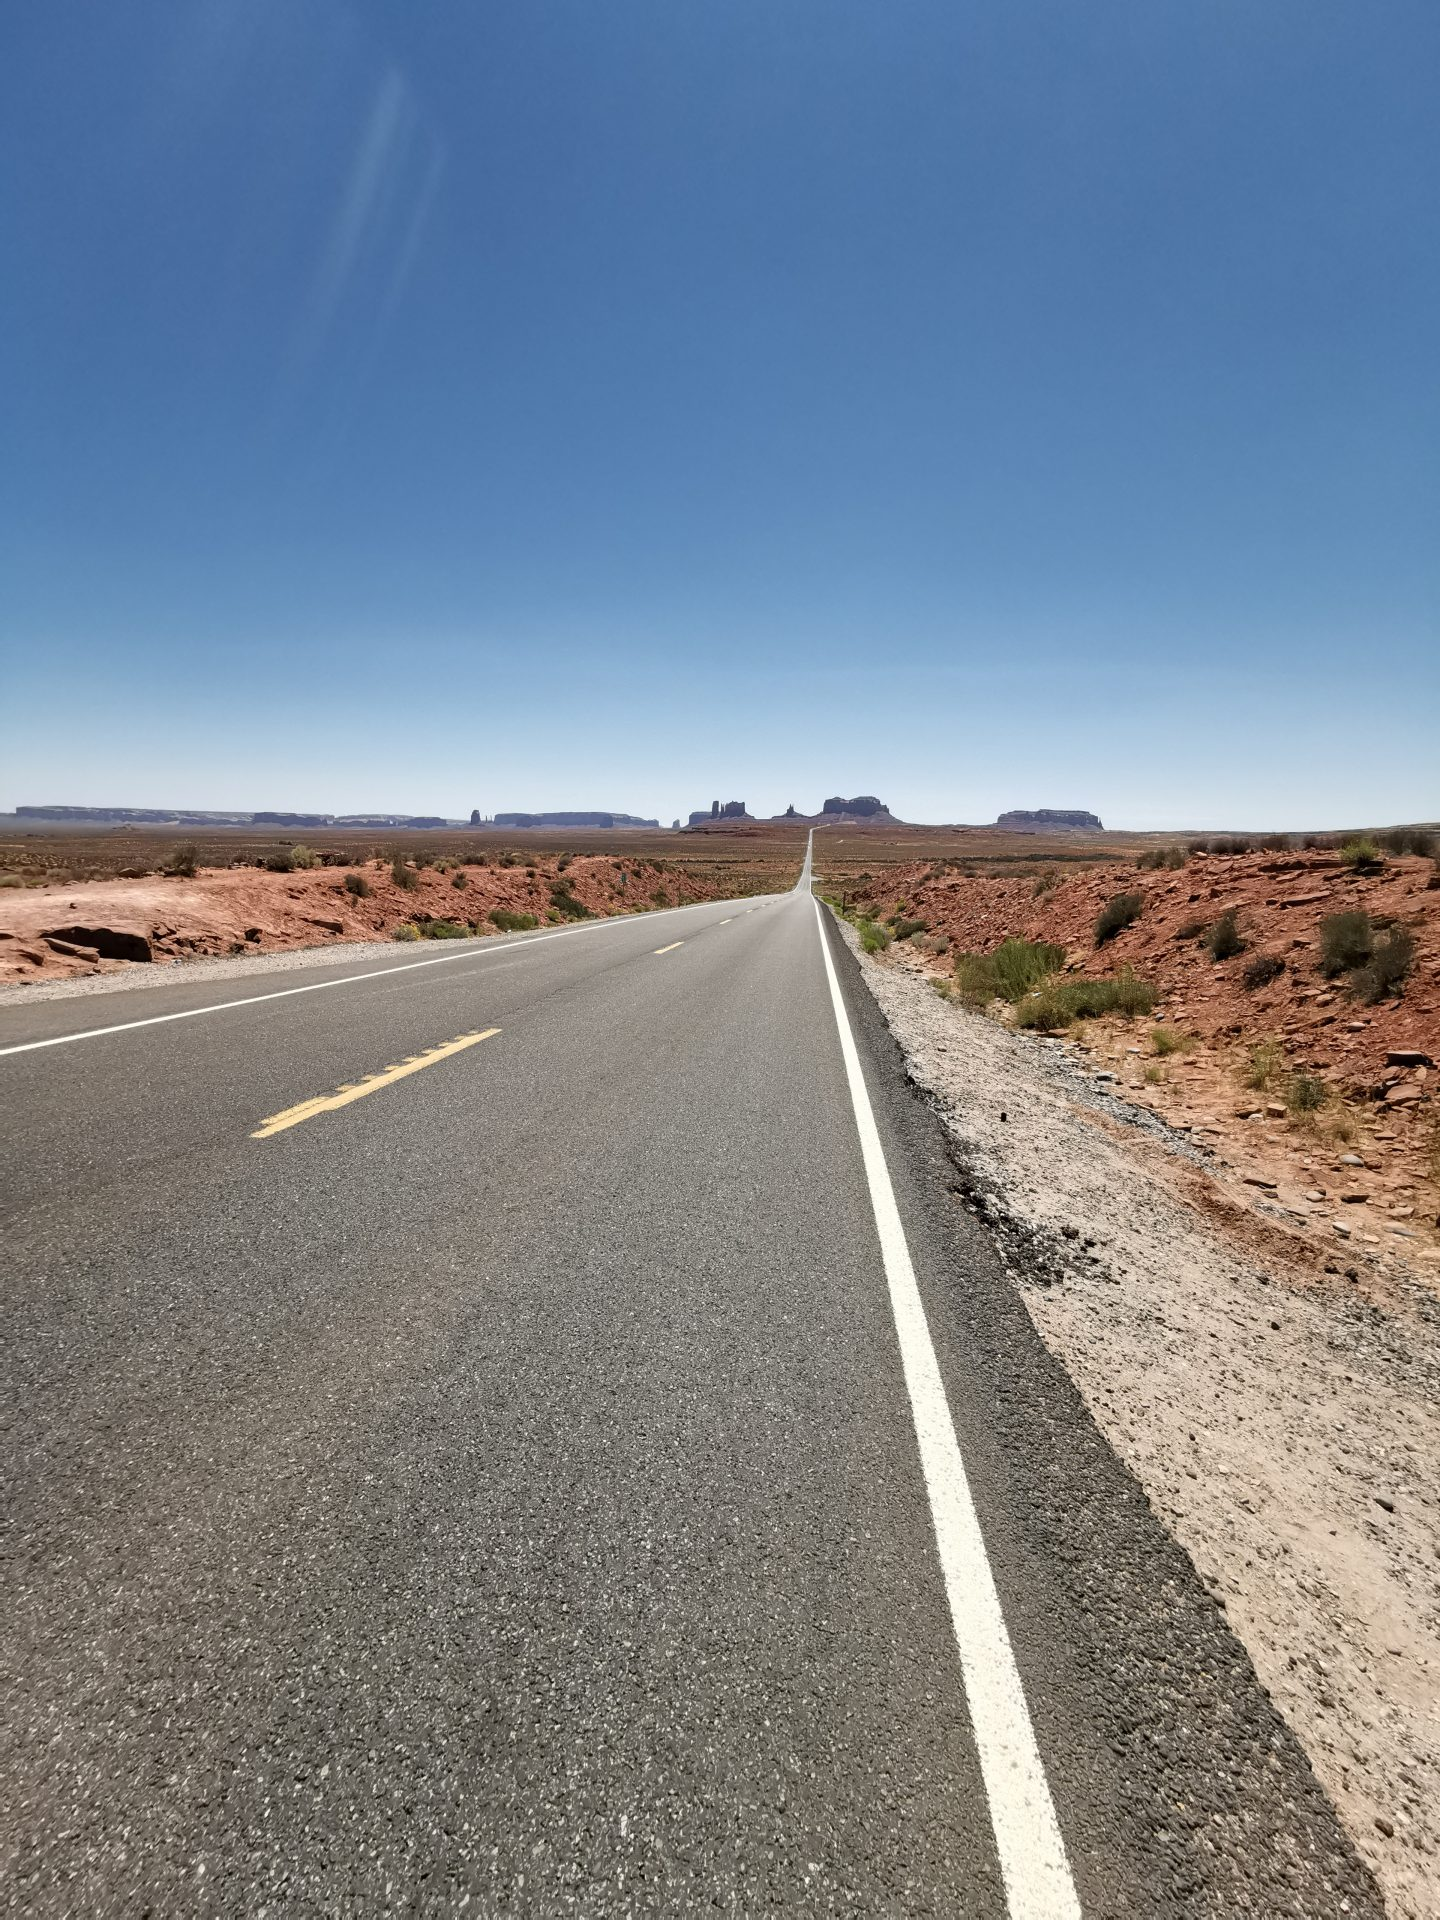 TREK AMERICA 2019 | GRAND TREK | DAY 14: MONUMENT VALLEY